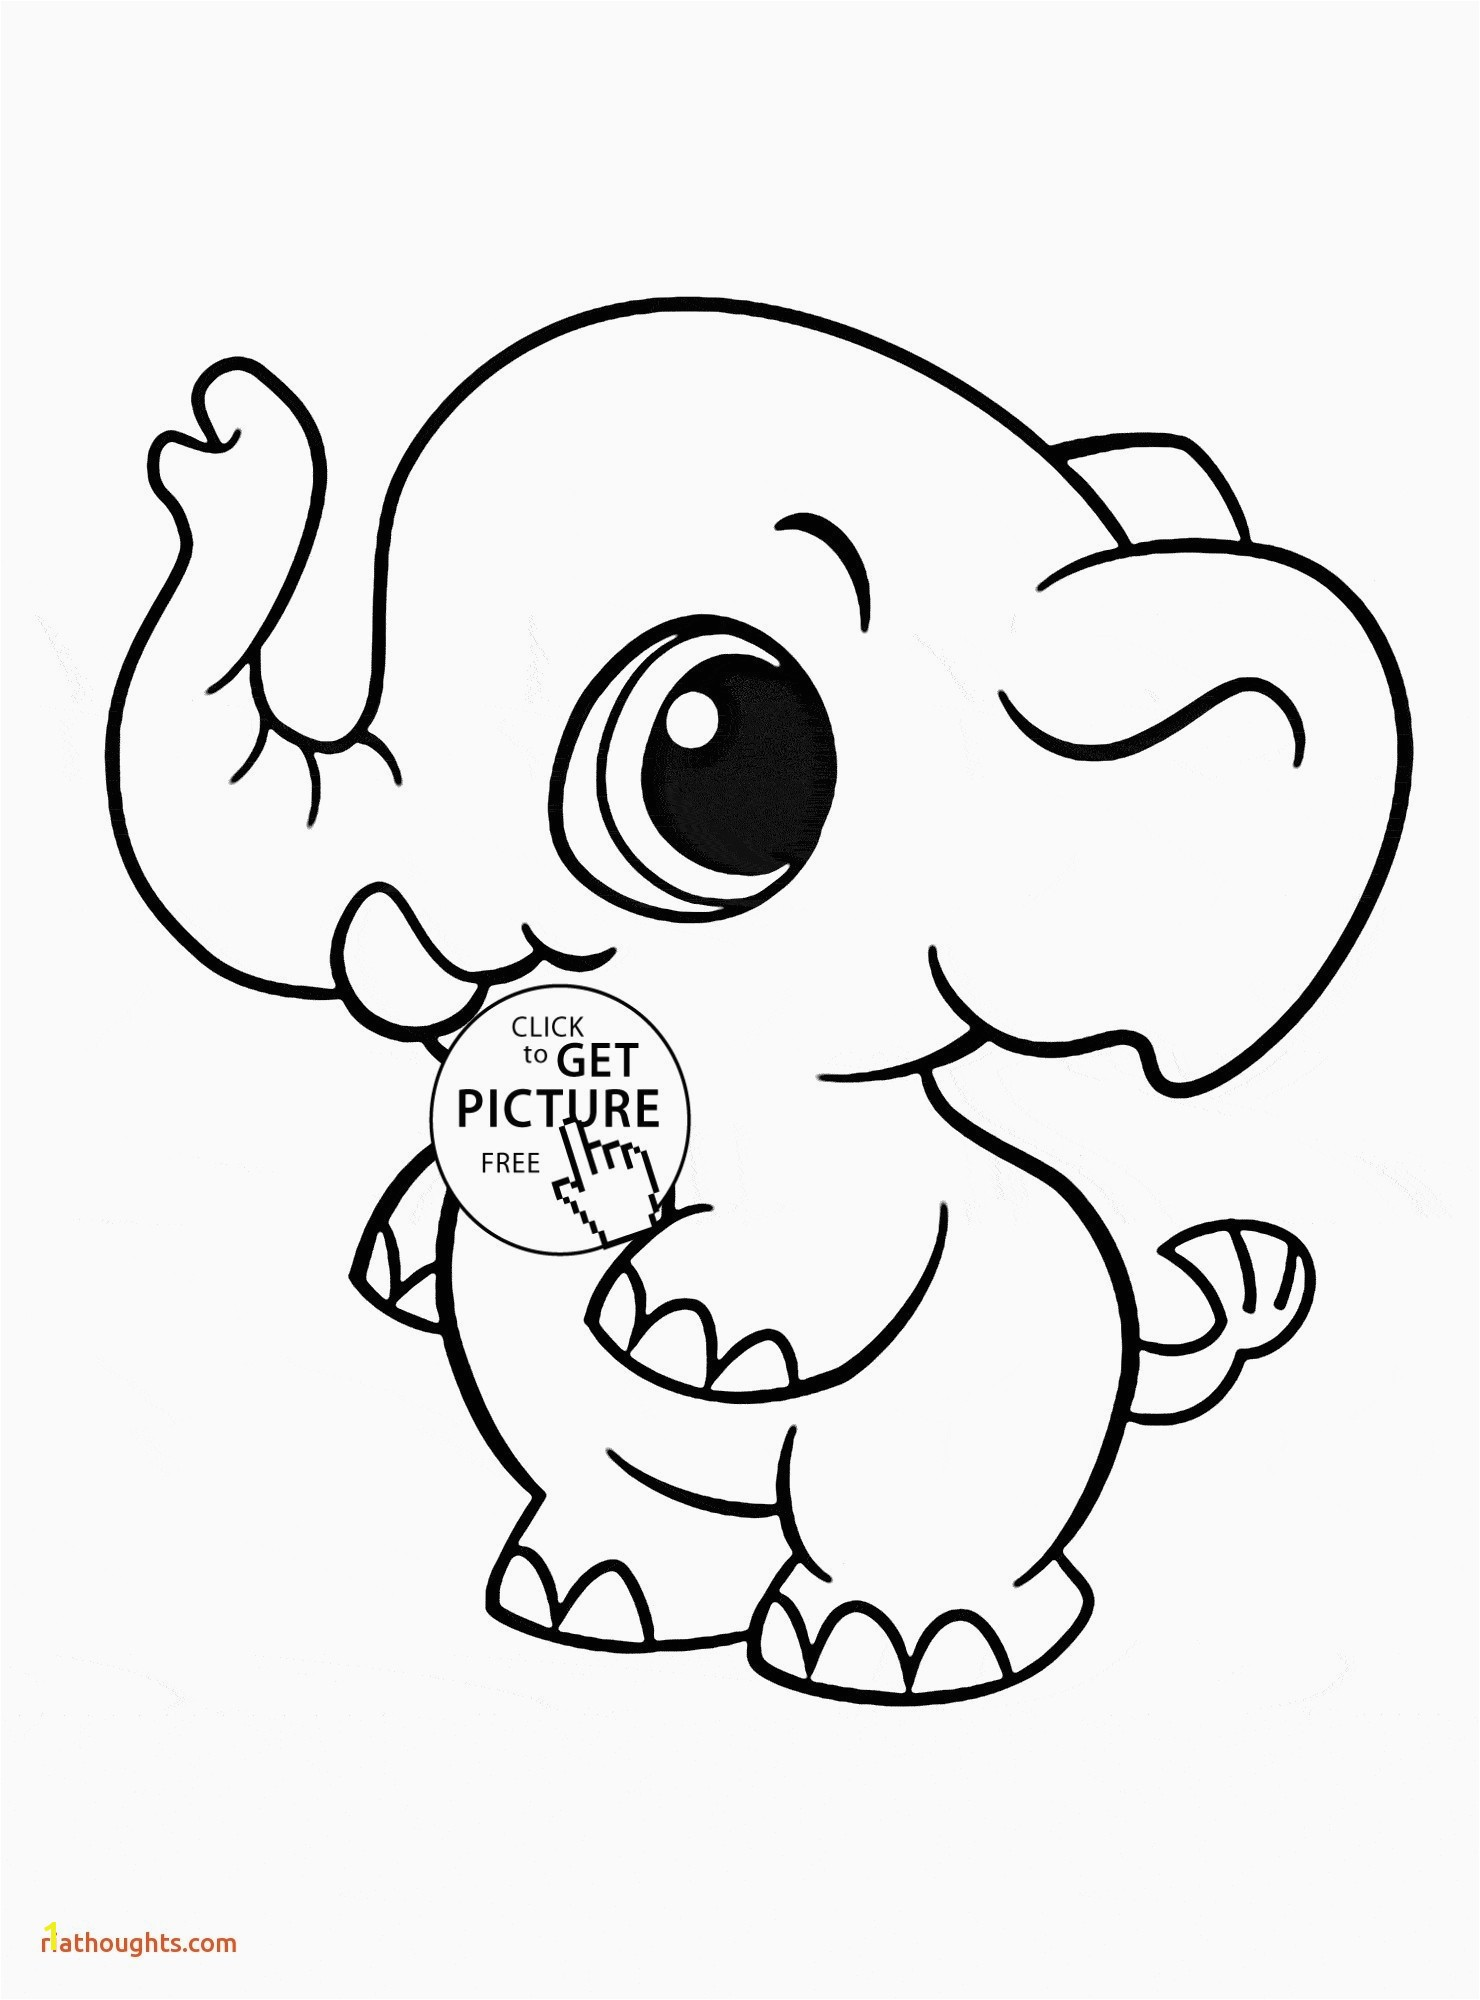 free printable realistic animal coloring pages Animal Coloring Pages for Adults Luxury Drawing Printables 0d